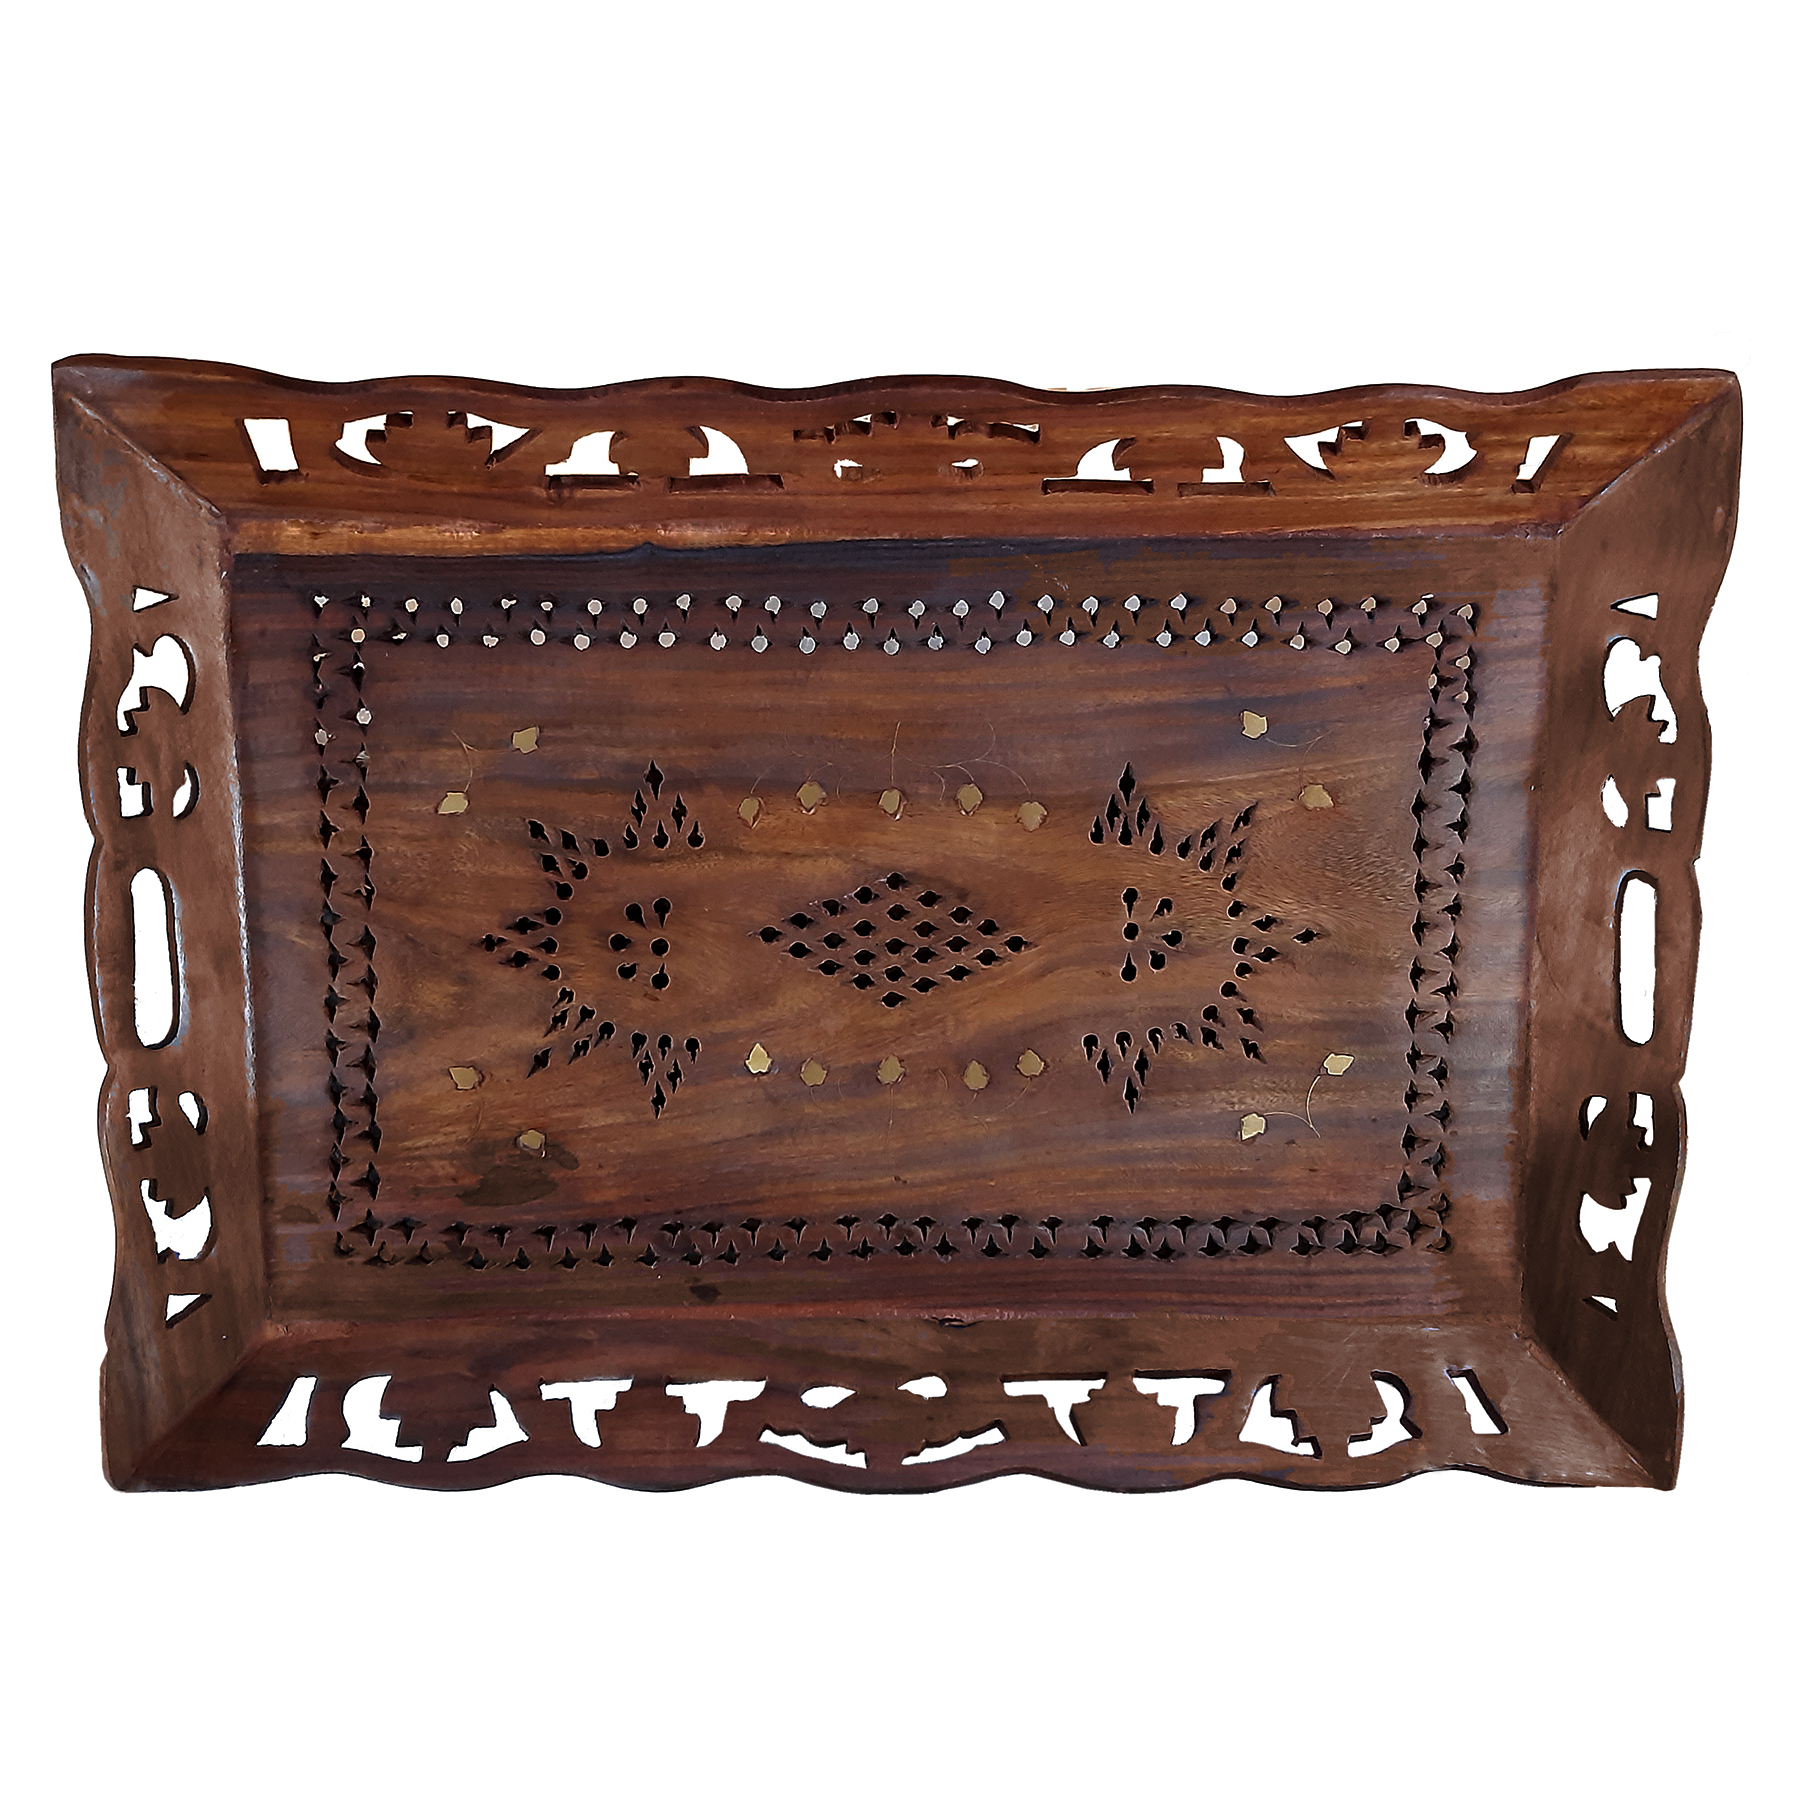 Handmade decorative wooden carving tray, HF-4430 MODEL